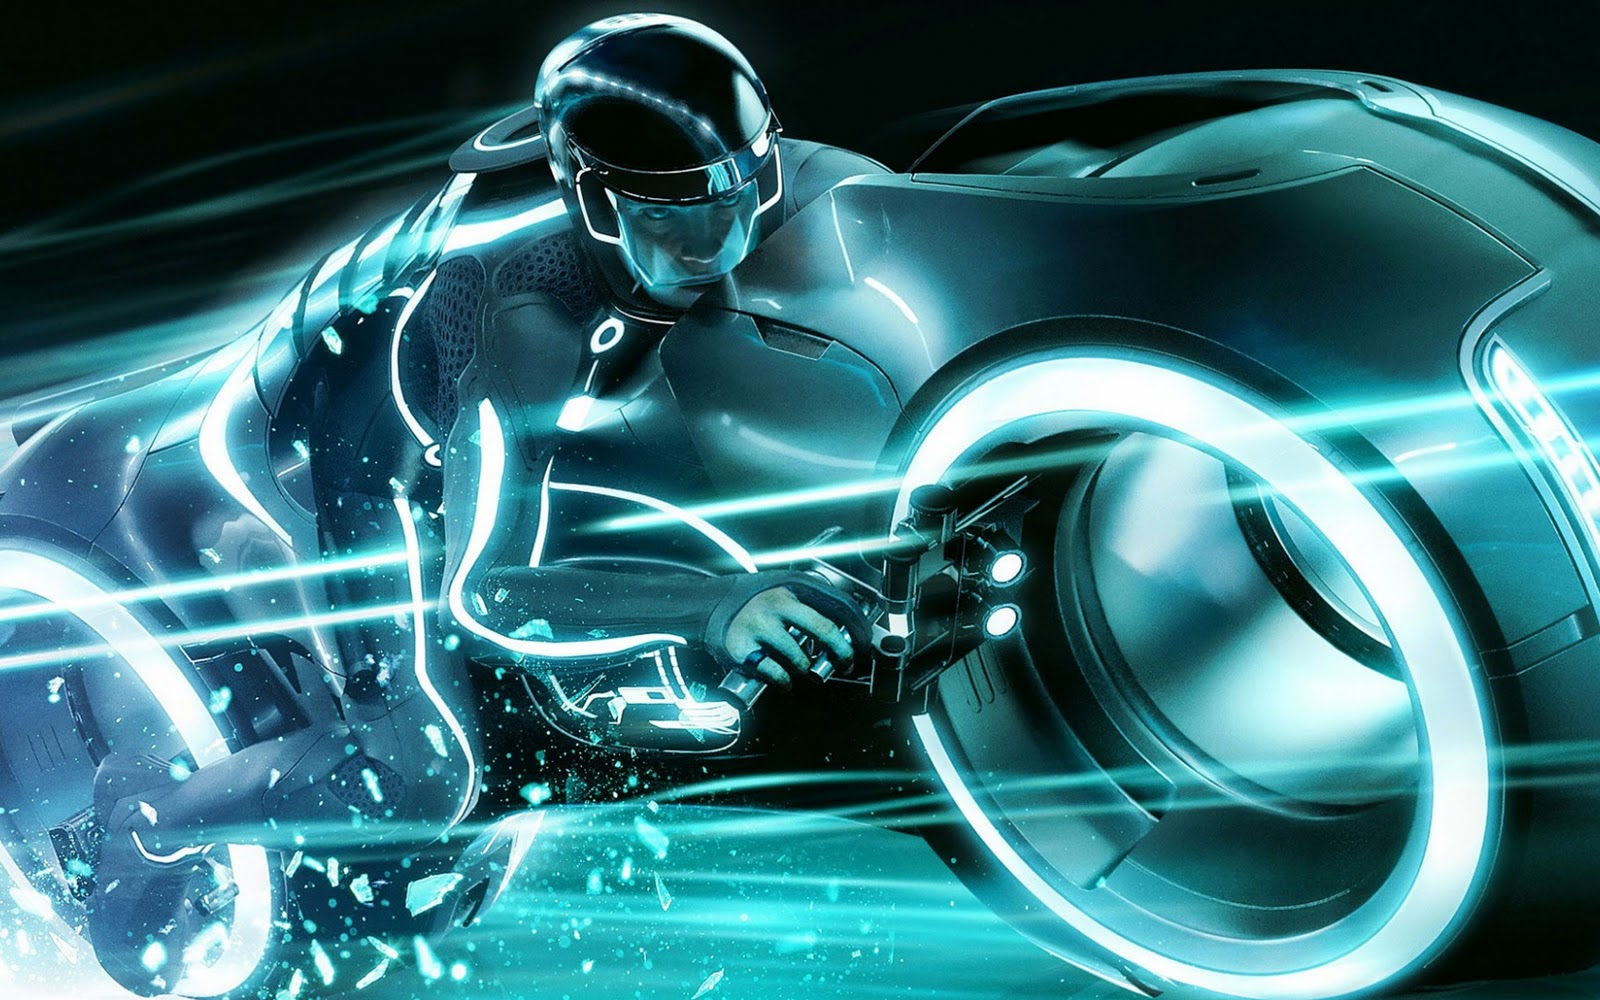 awesome tronlegacy wallpapers - photo #35